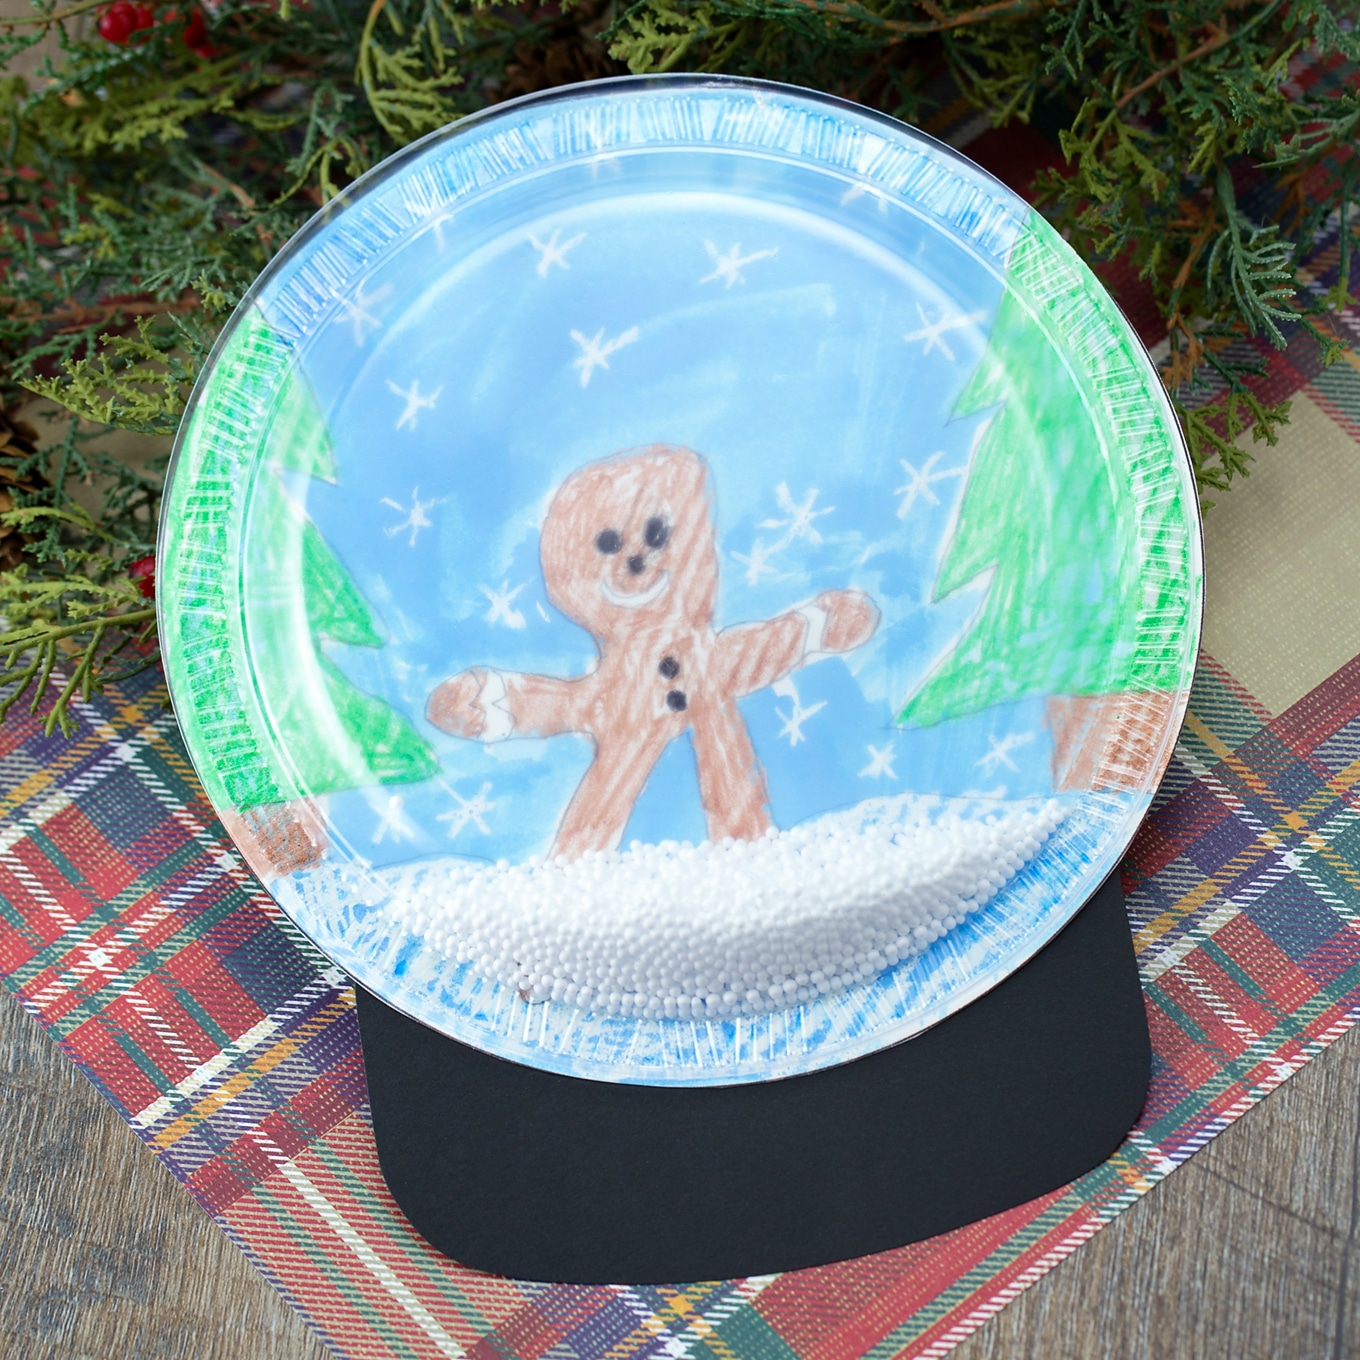 This Plastic Plate Snow Globe Craft is Perfect for School or Home